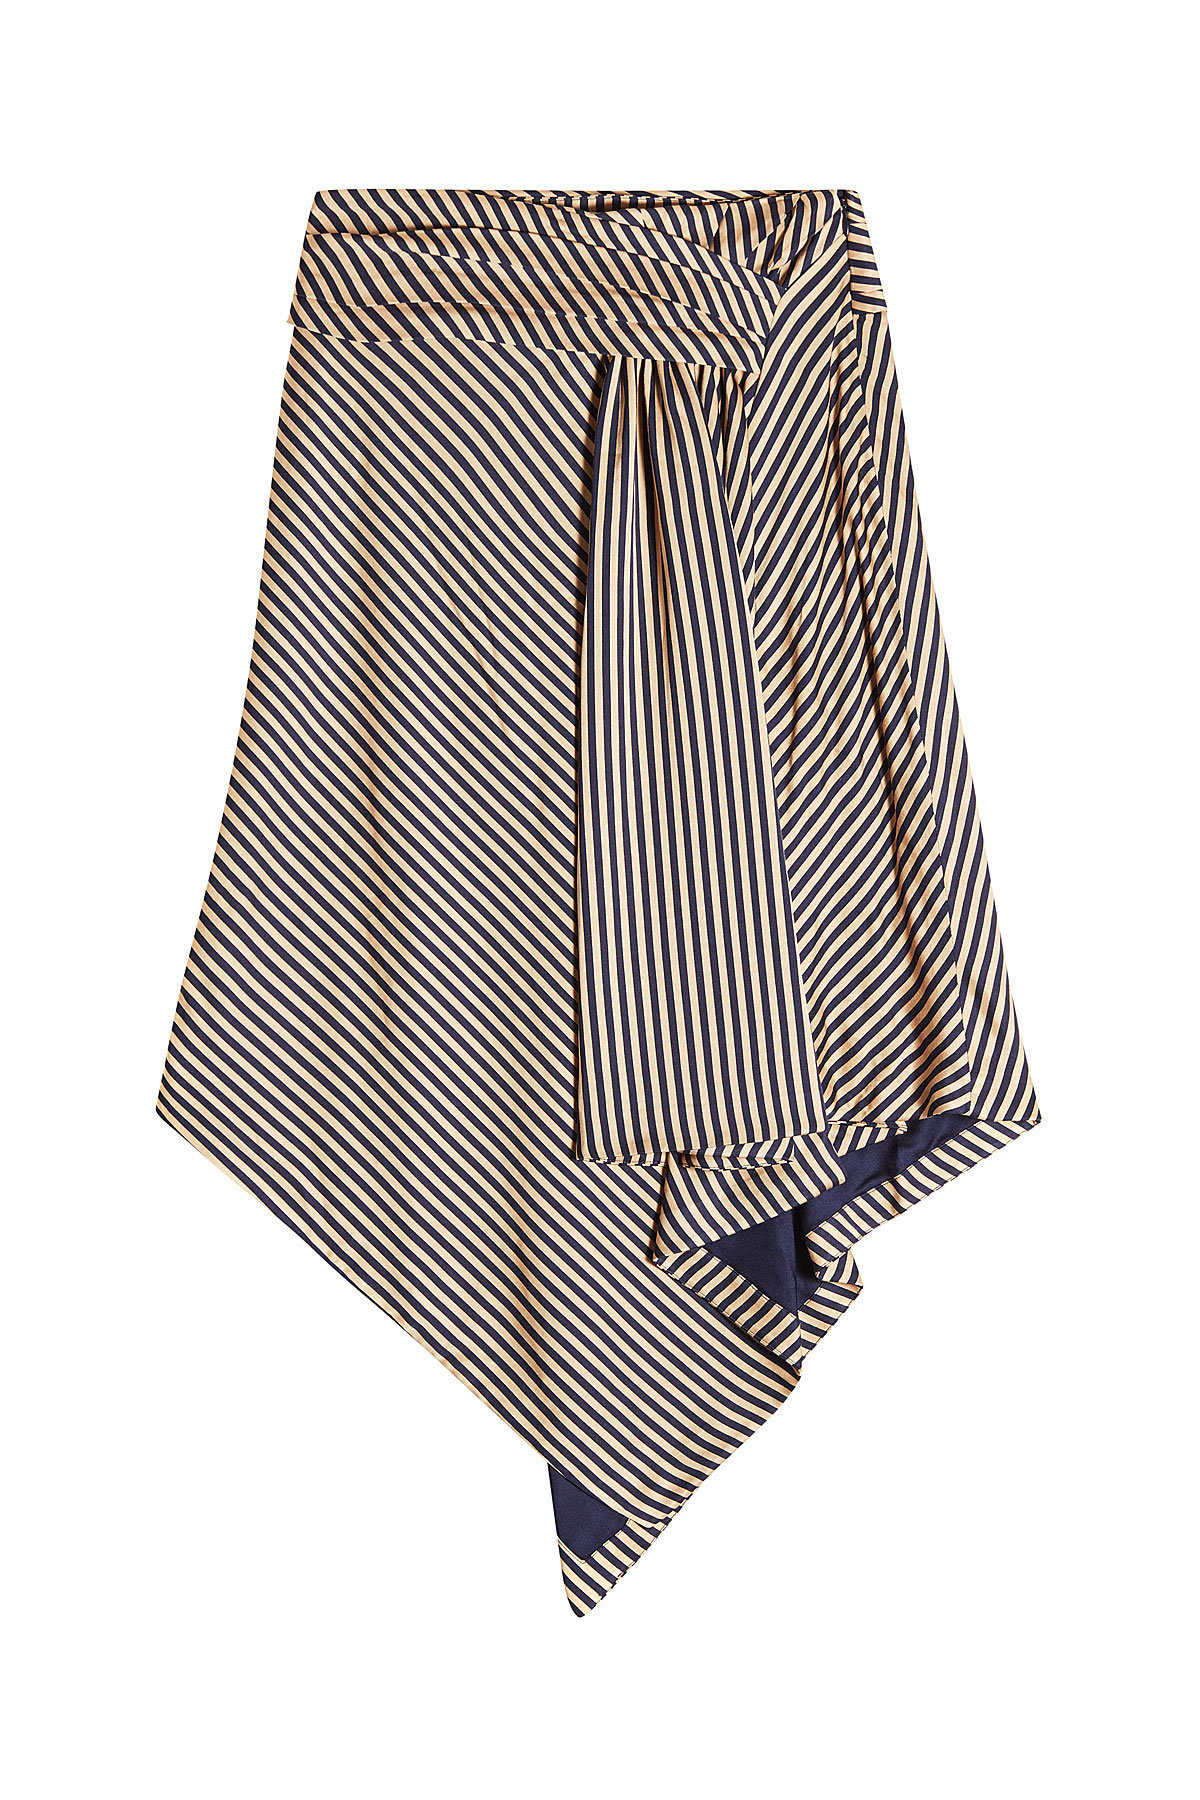 d793cd6f1c3 Jonathan Simkhai Striped Draped Skirt GOOFASH 290077